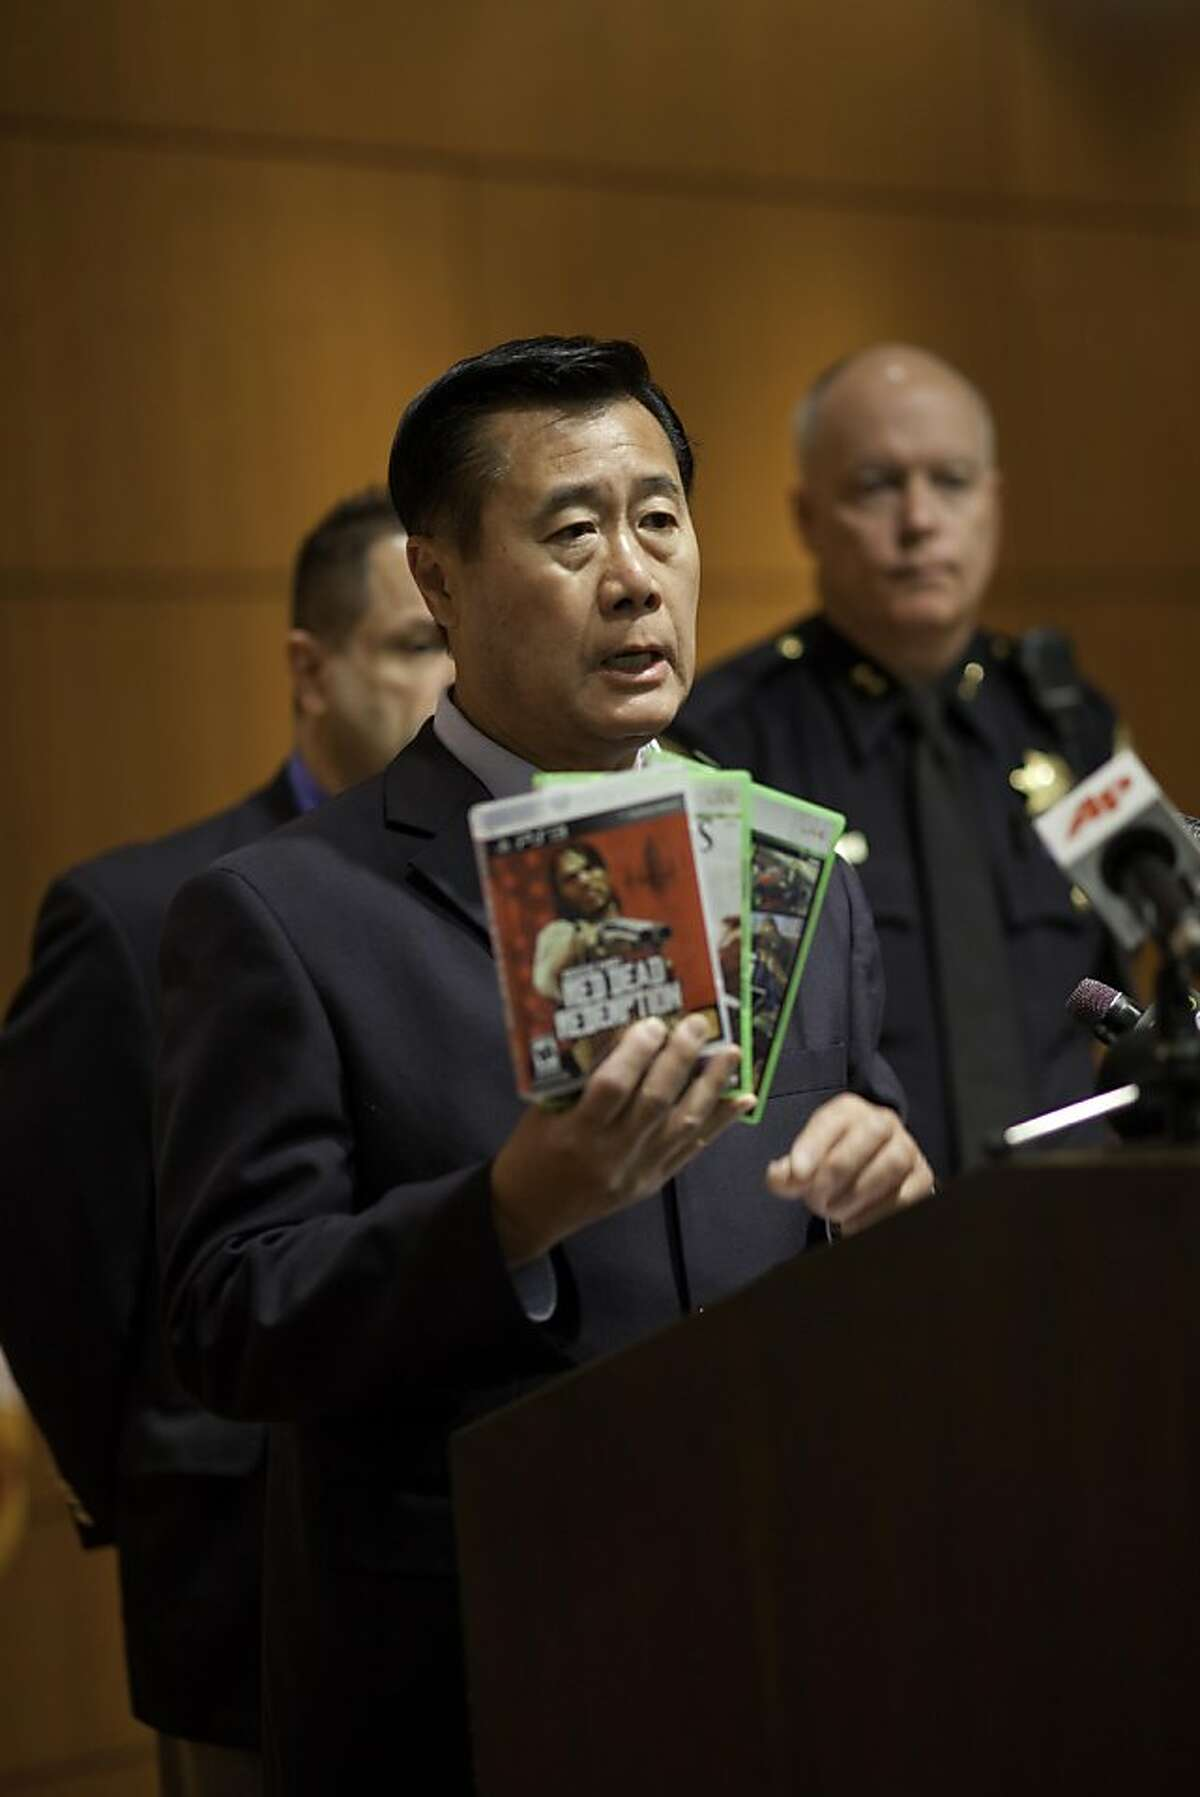 California State Senator Leland Yee speaks at a press conference on the Supreme Court Ruling of California's violent video game law at the Hiram Johnson State building in San Francisco, California, on Monday, June 27, 2011. Behind are Kevin Cashman, SFPD Deputy Chief (far right) and George Fouras, MD, American Academy of Child and Adolescent Psychiatry San Francisco Medical Society (left, partially hidden).